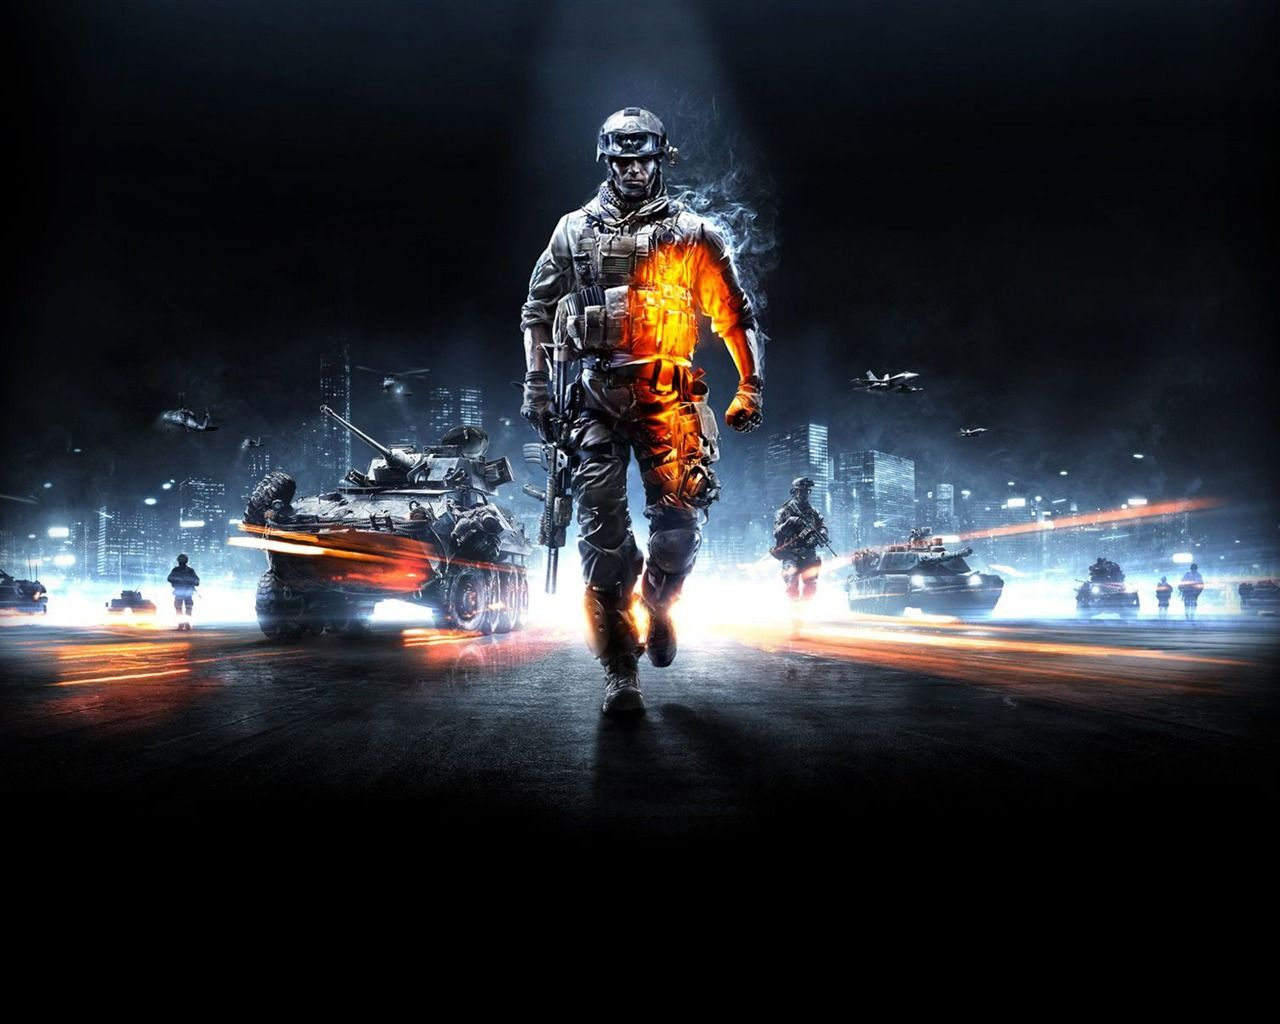 Battlefield 3 1280x1024 Wallpapers Battlefield 3 Battlefield Beautiful Wallpapers